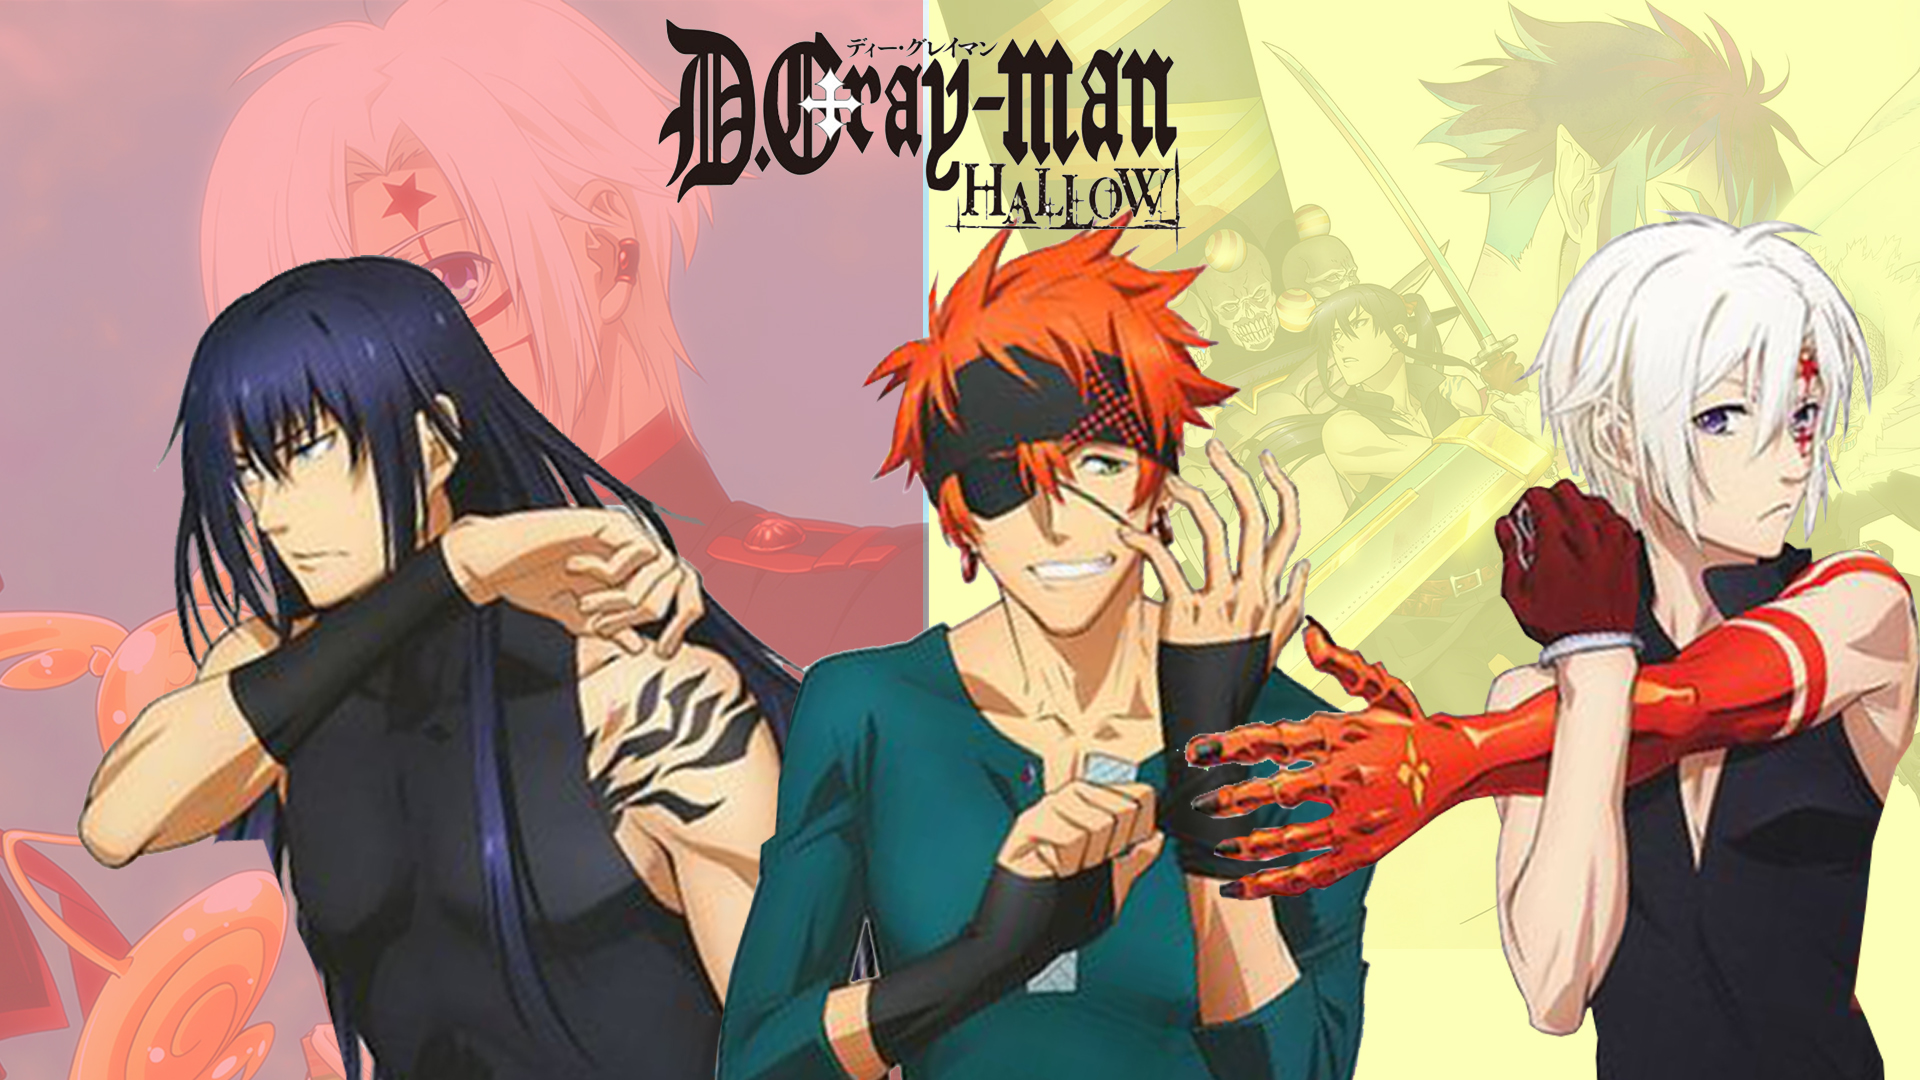 D gray man desktop background part 2 - D gray man images ...